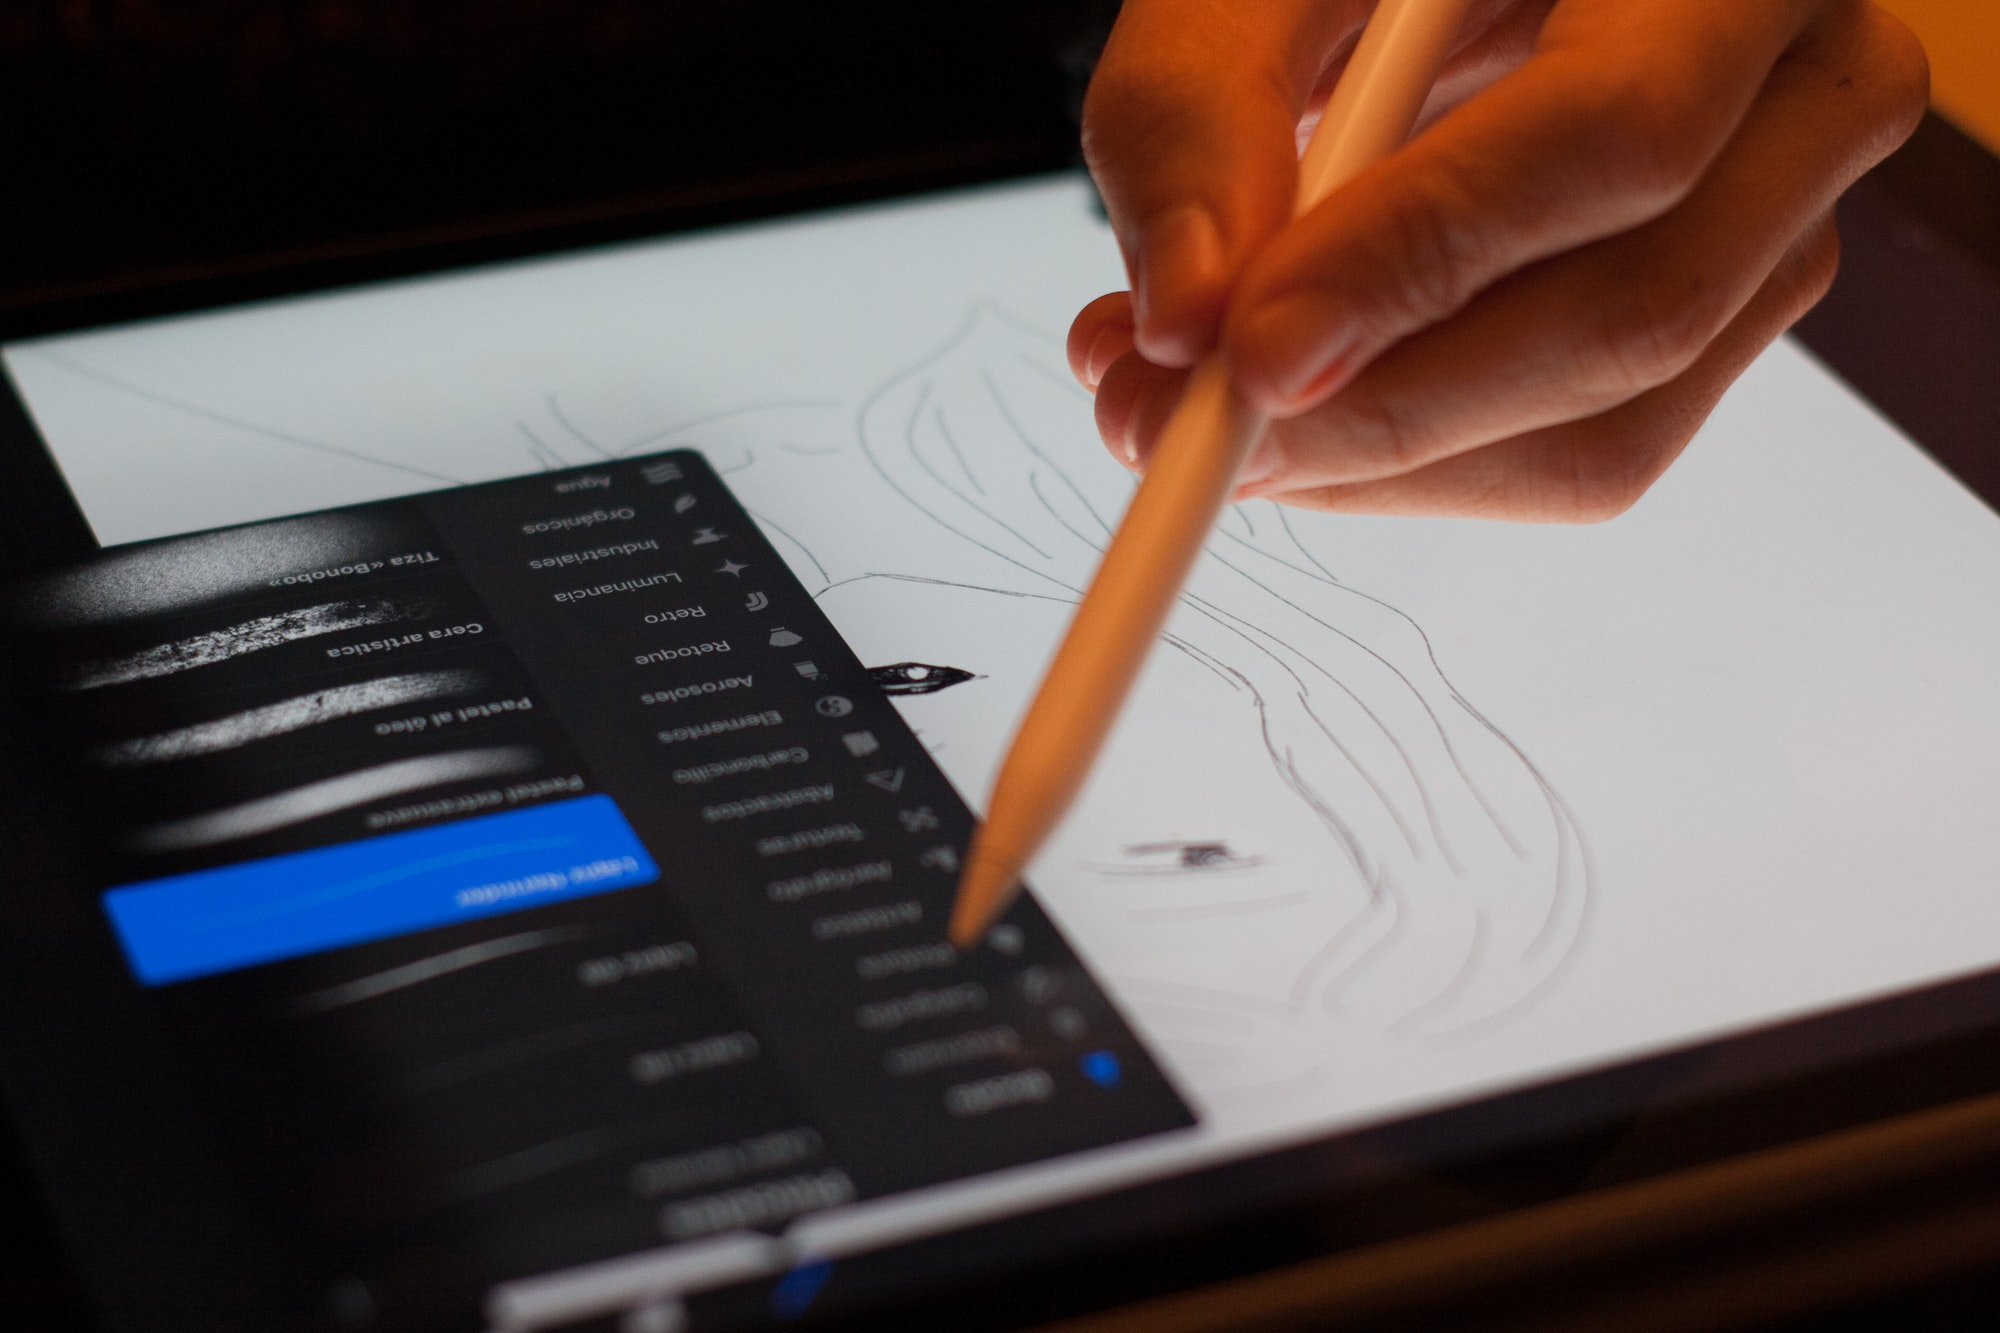 How To Download My Brushes